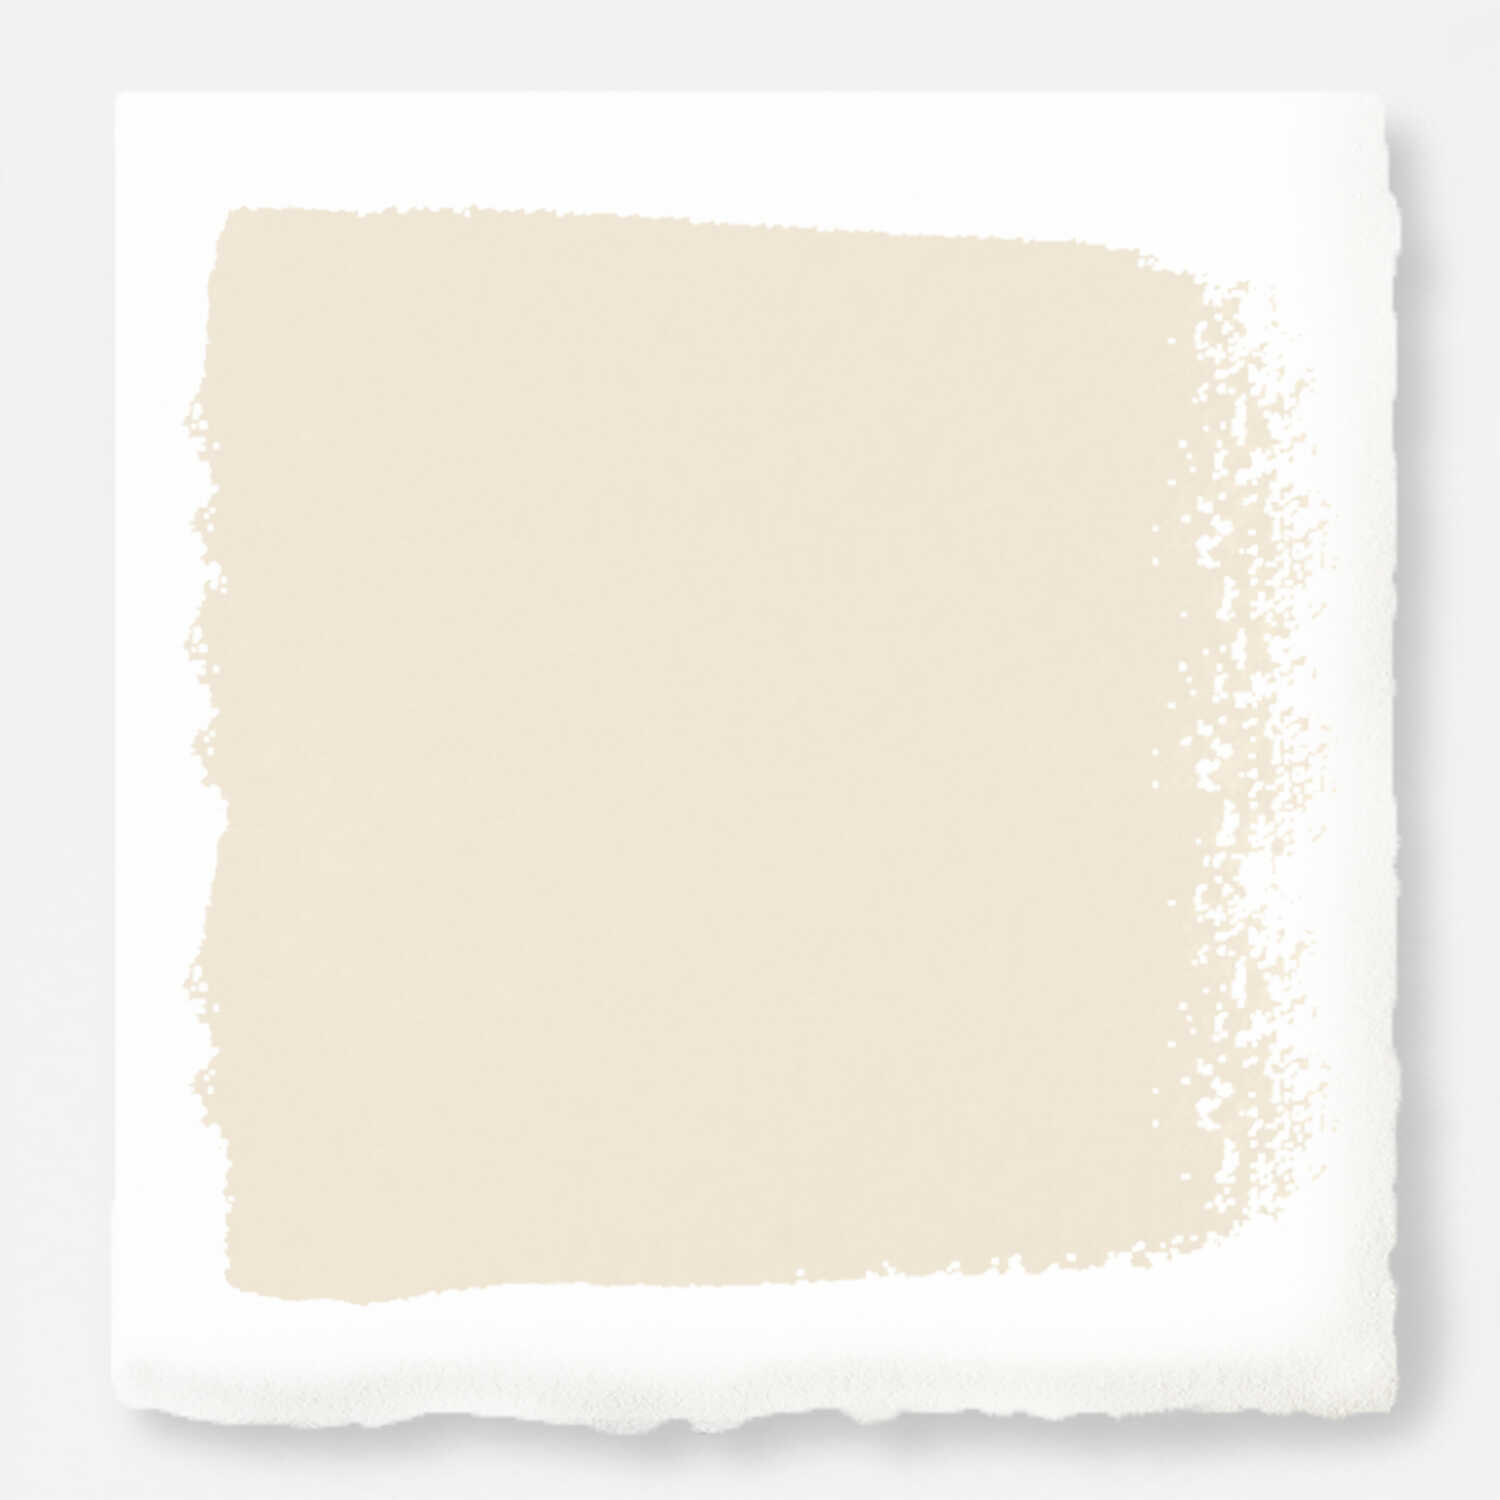 Magnolia Home  Semi-Gloss  Carter Creme  Exterior Paint and Primer  1 gal.